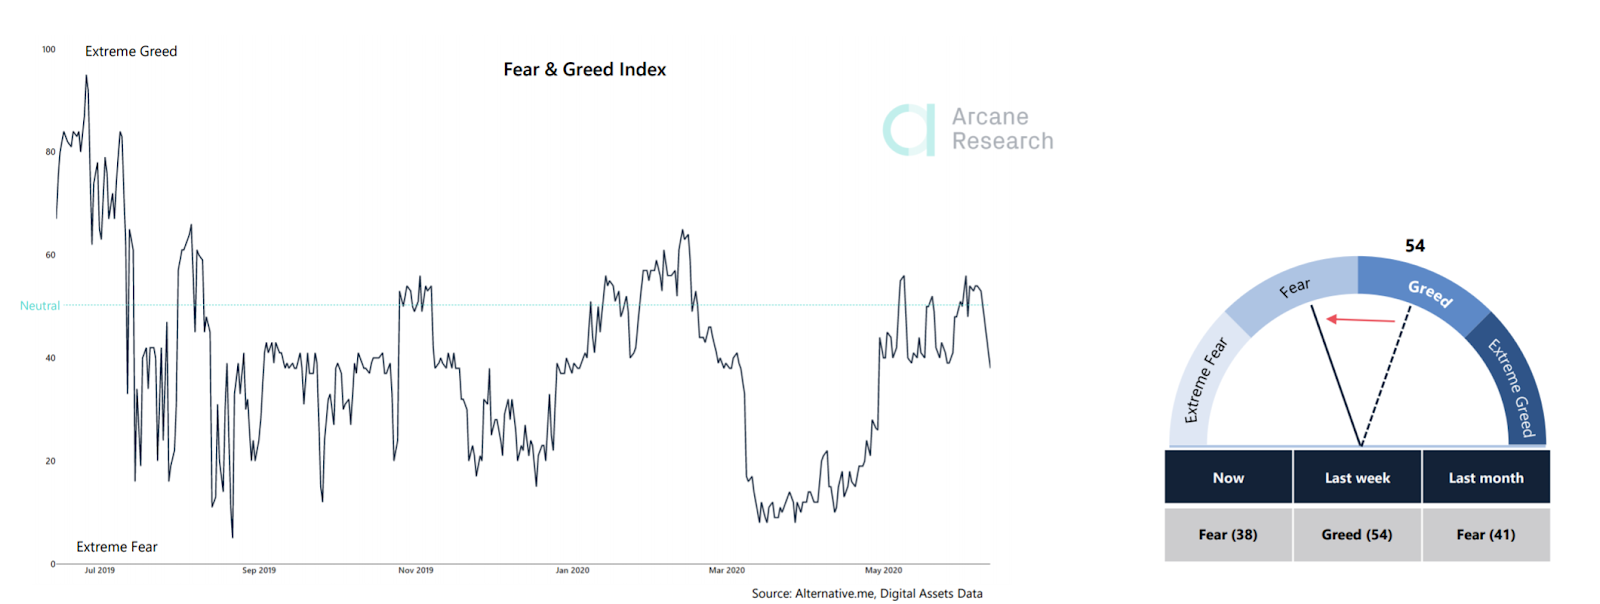 The Fear and Greed Index in all markets is in fear